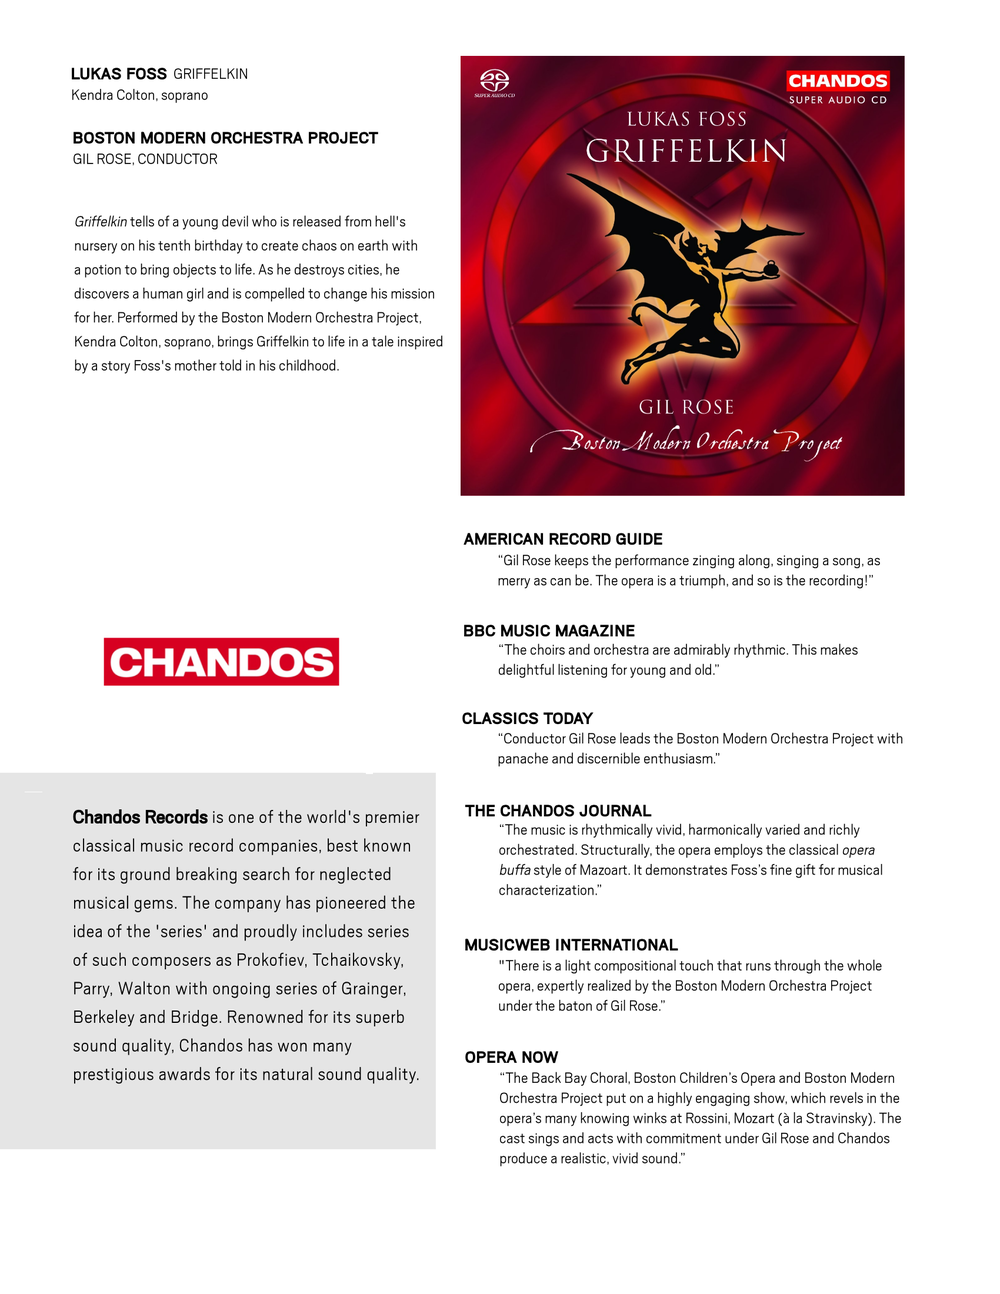 Foss - Chandos 10067 one-sheet.png